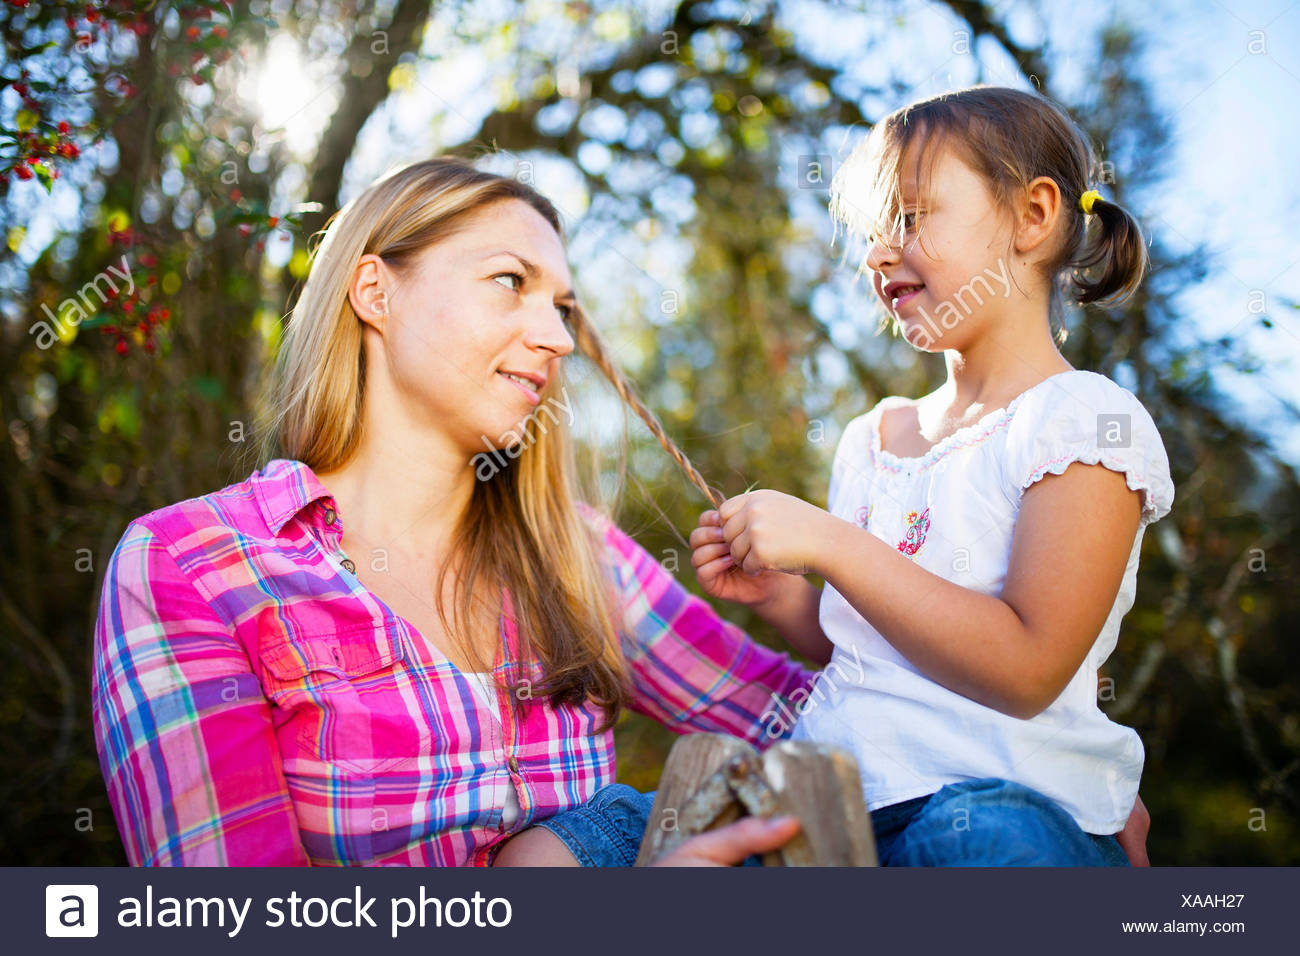 Portrait of mother and daughter outdoors, Munich, Bavaria, Germany - Stock Image